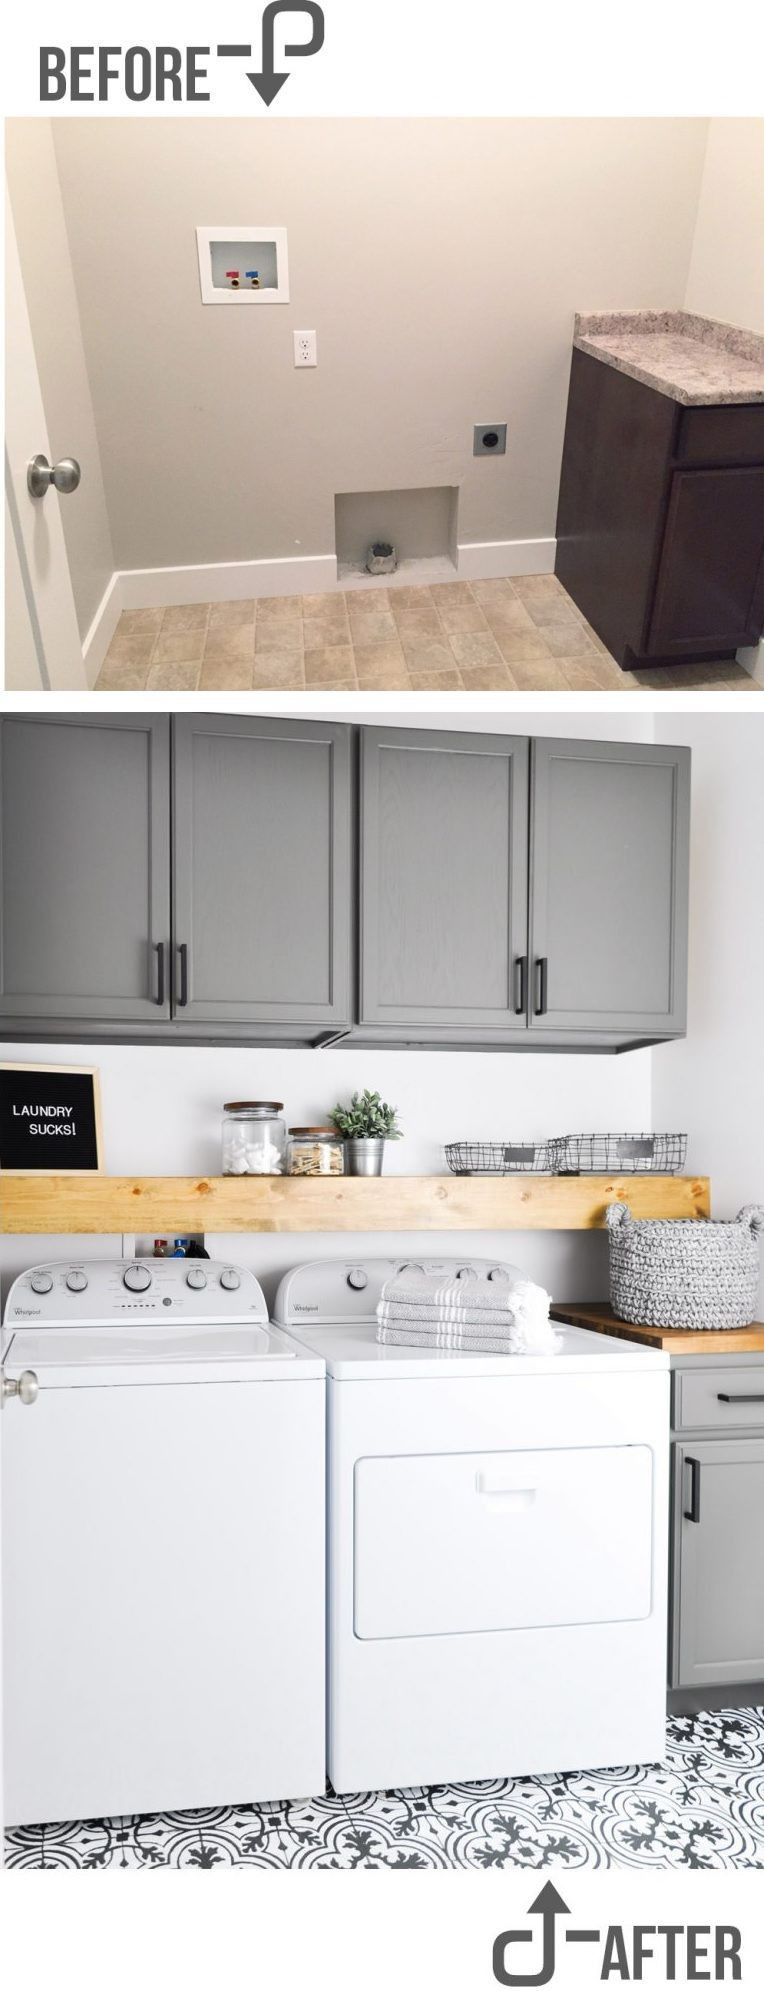 9x9 Room Design: Pin By Jill Dugan-Miller On Laundry In 2020